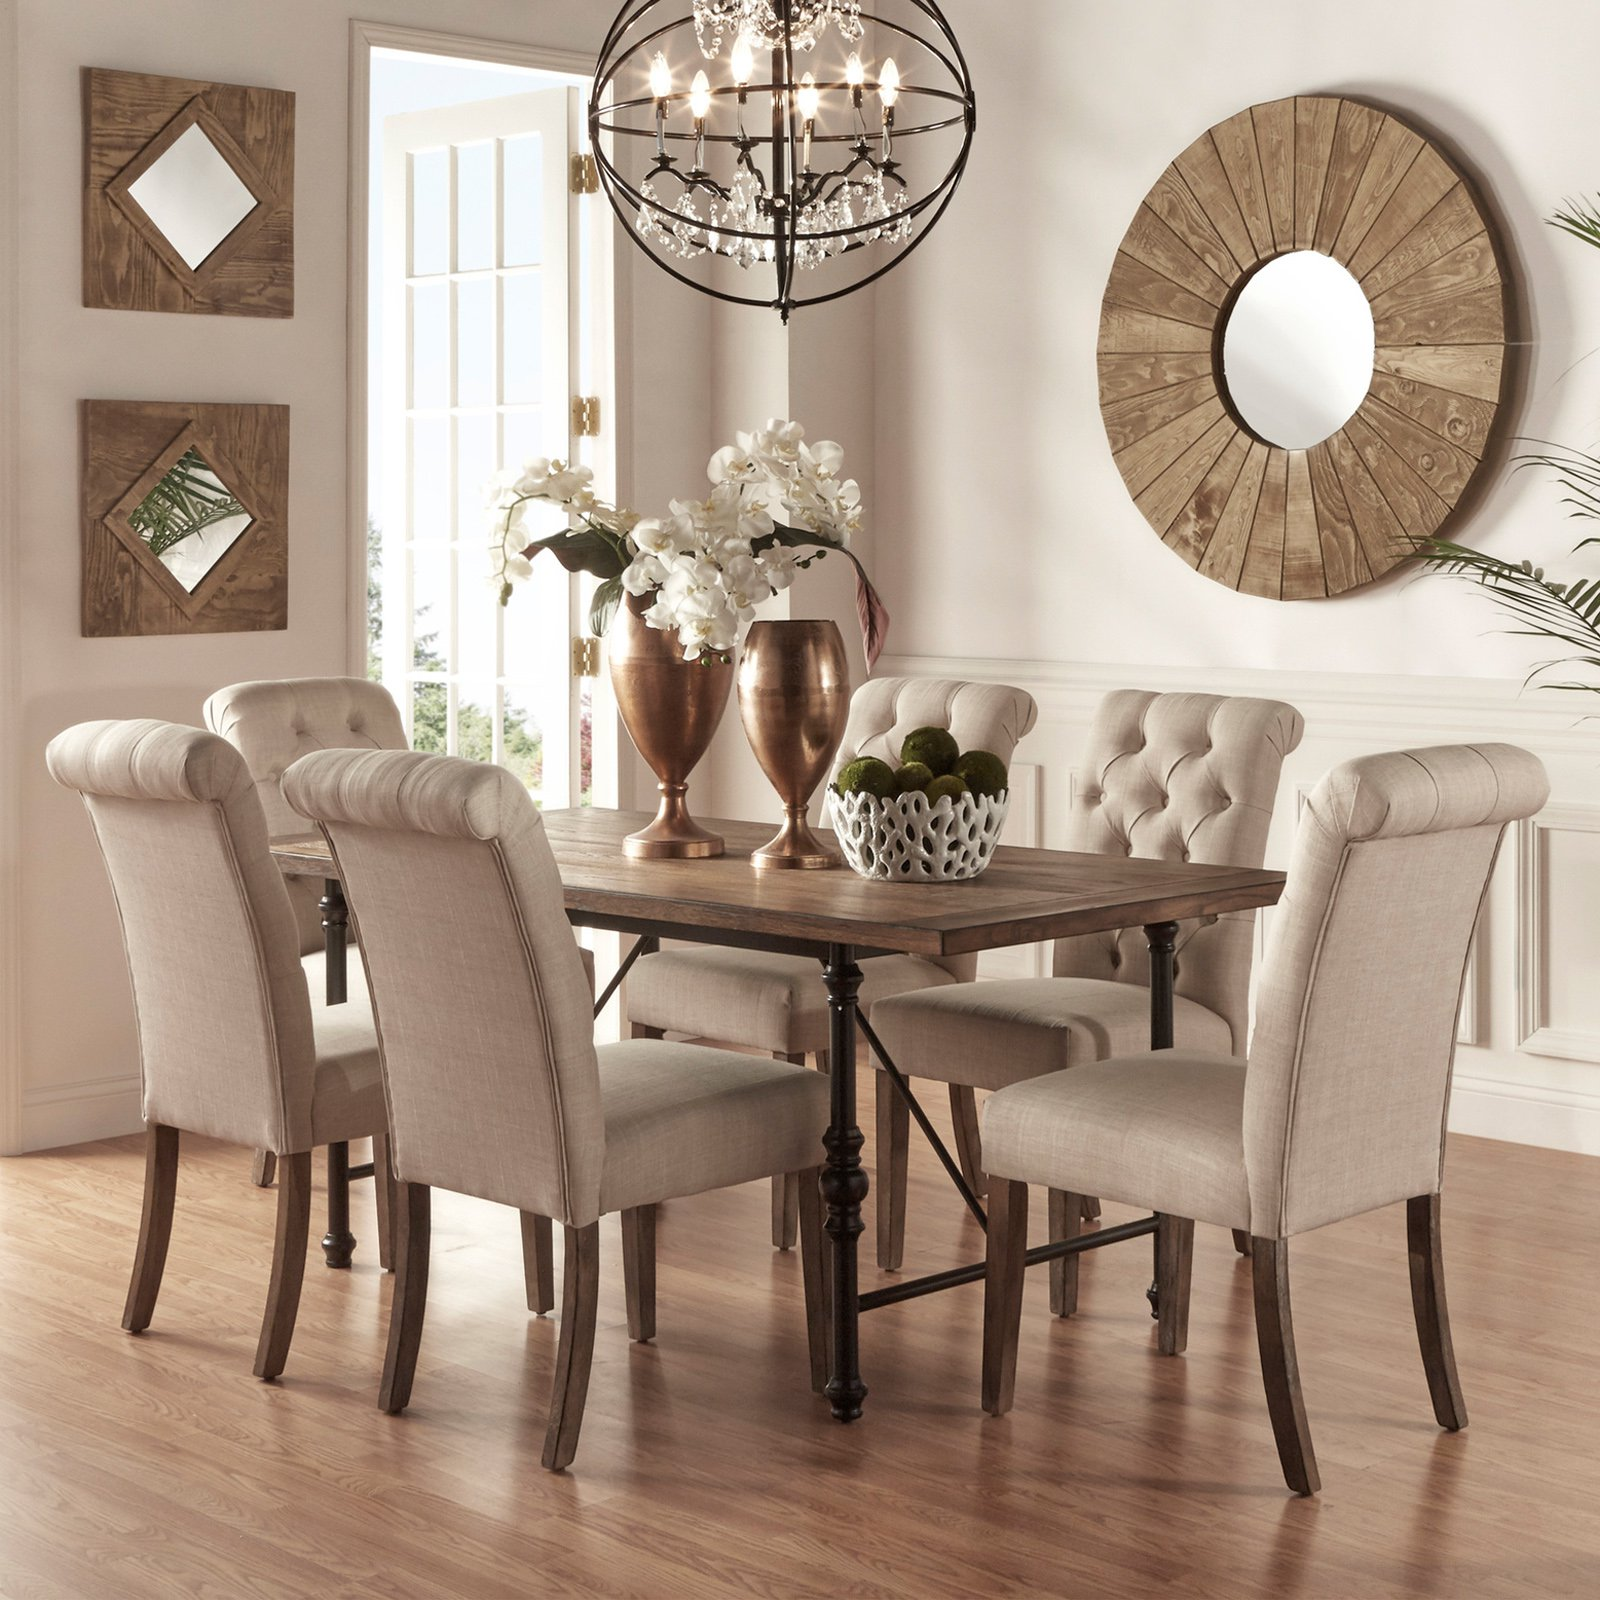 Weston Home 7 Piece Industrial Dining Set with Beige Tufted Chairs